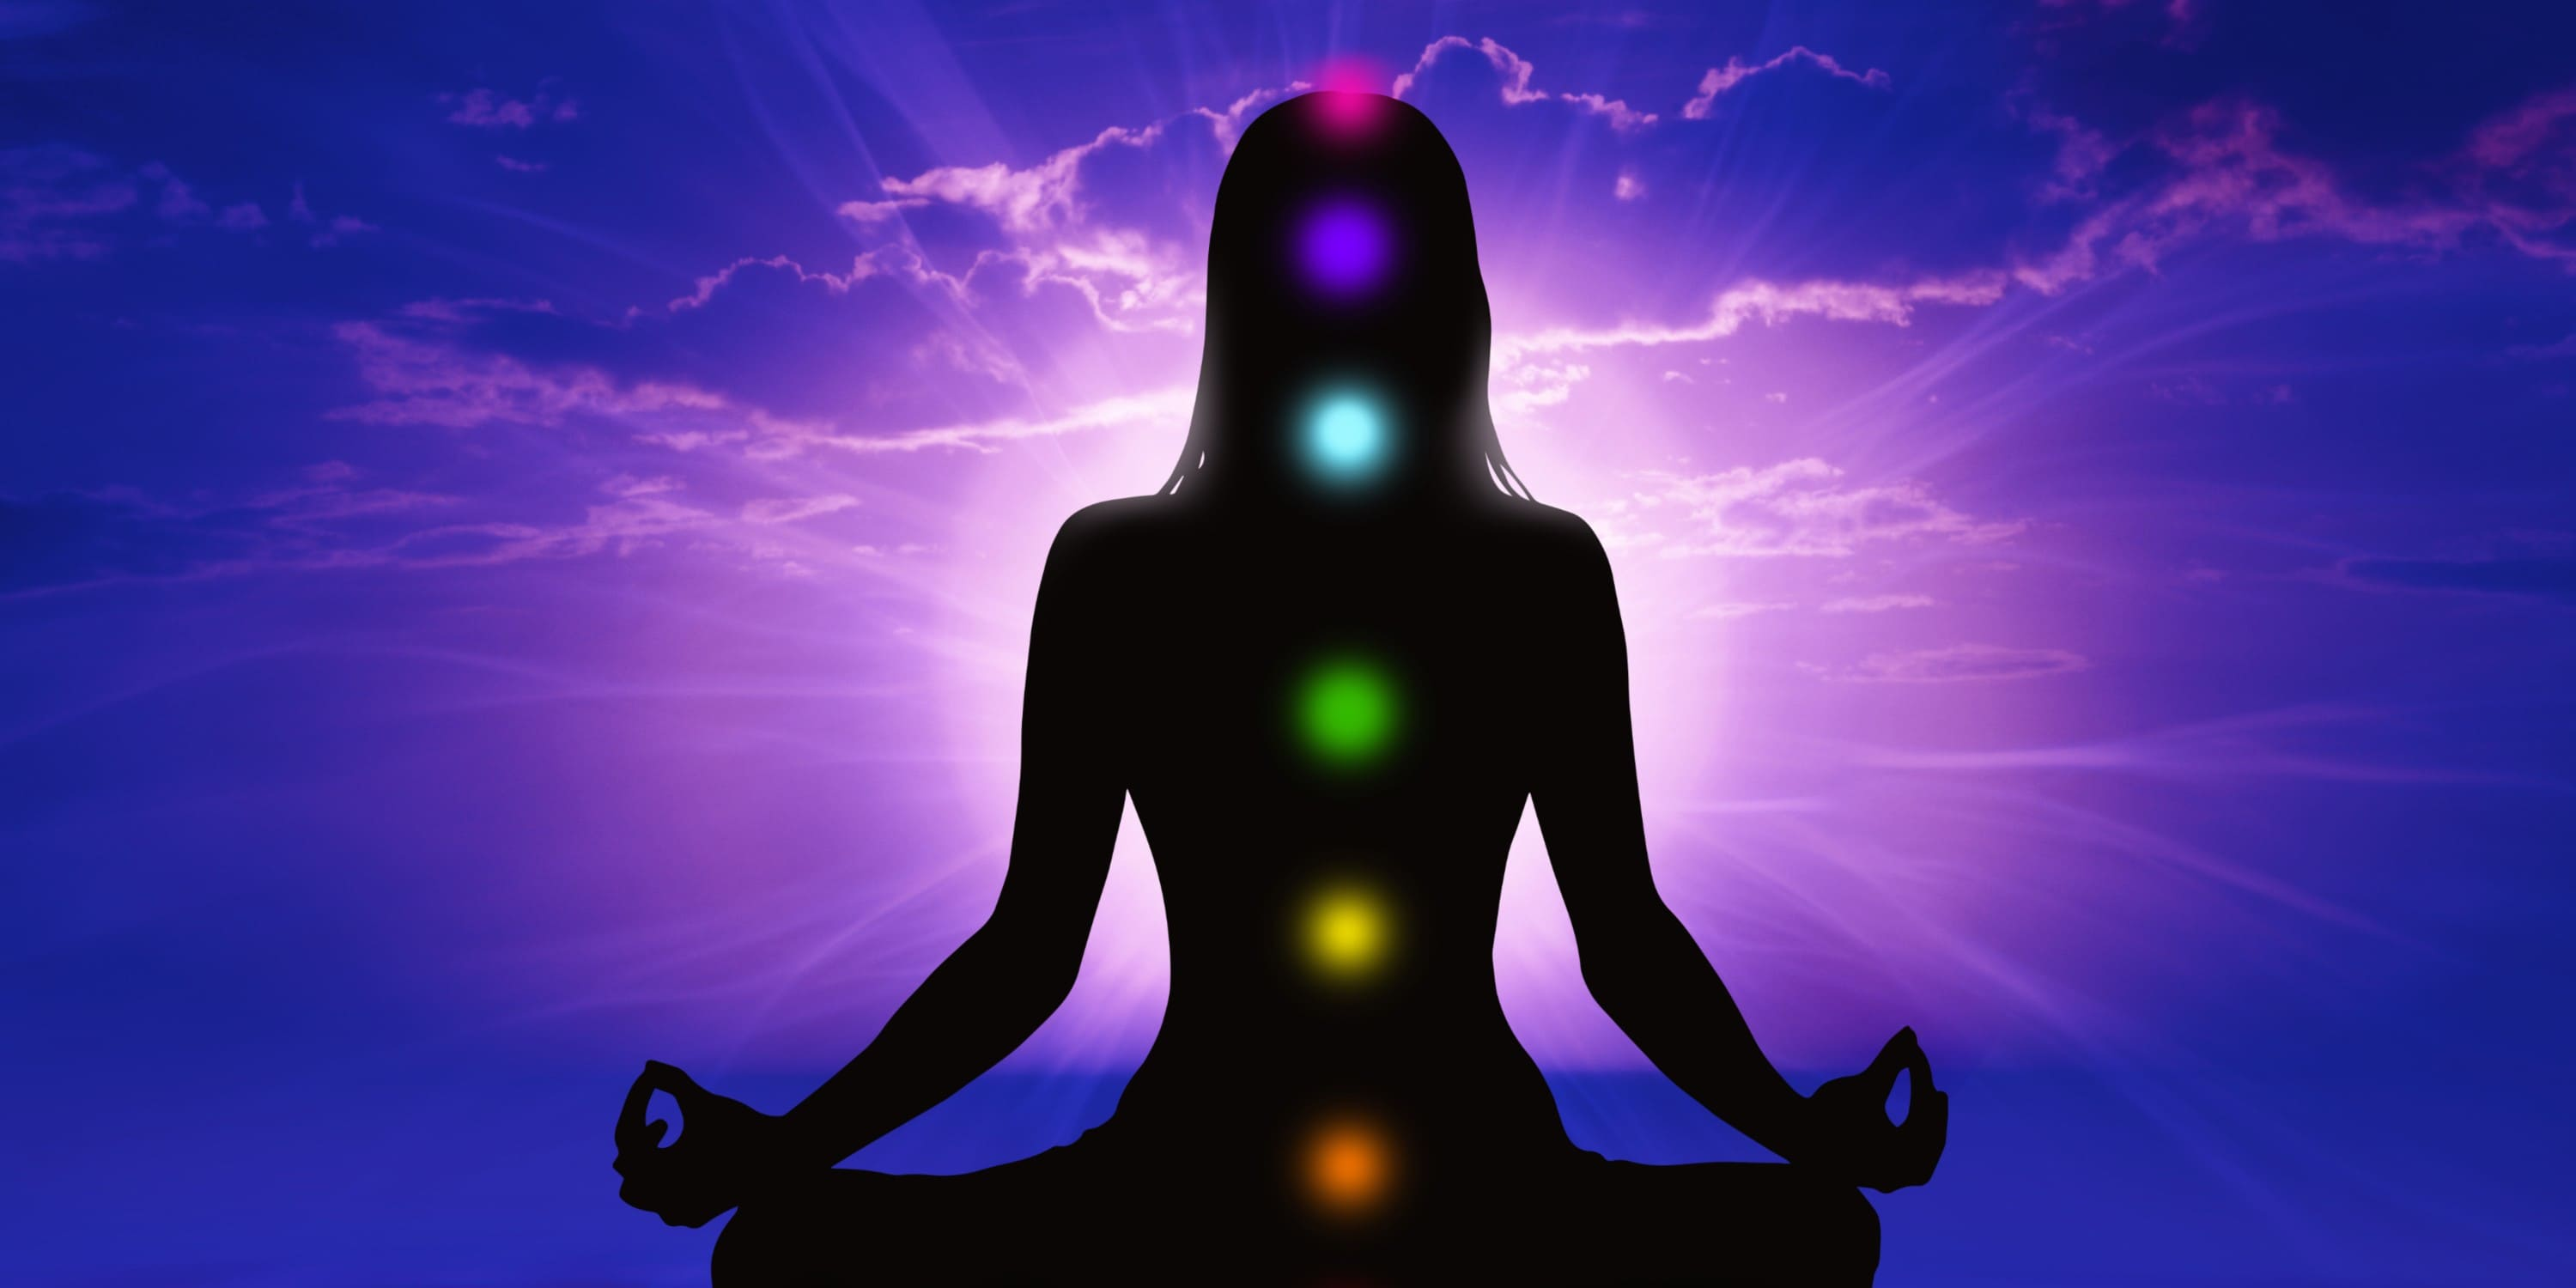 chakra meditation, how to perform chakra meditation, what is chakra meditation